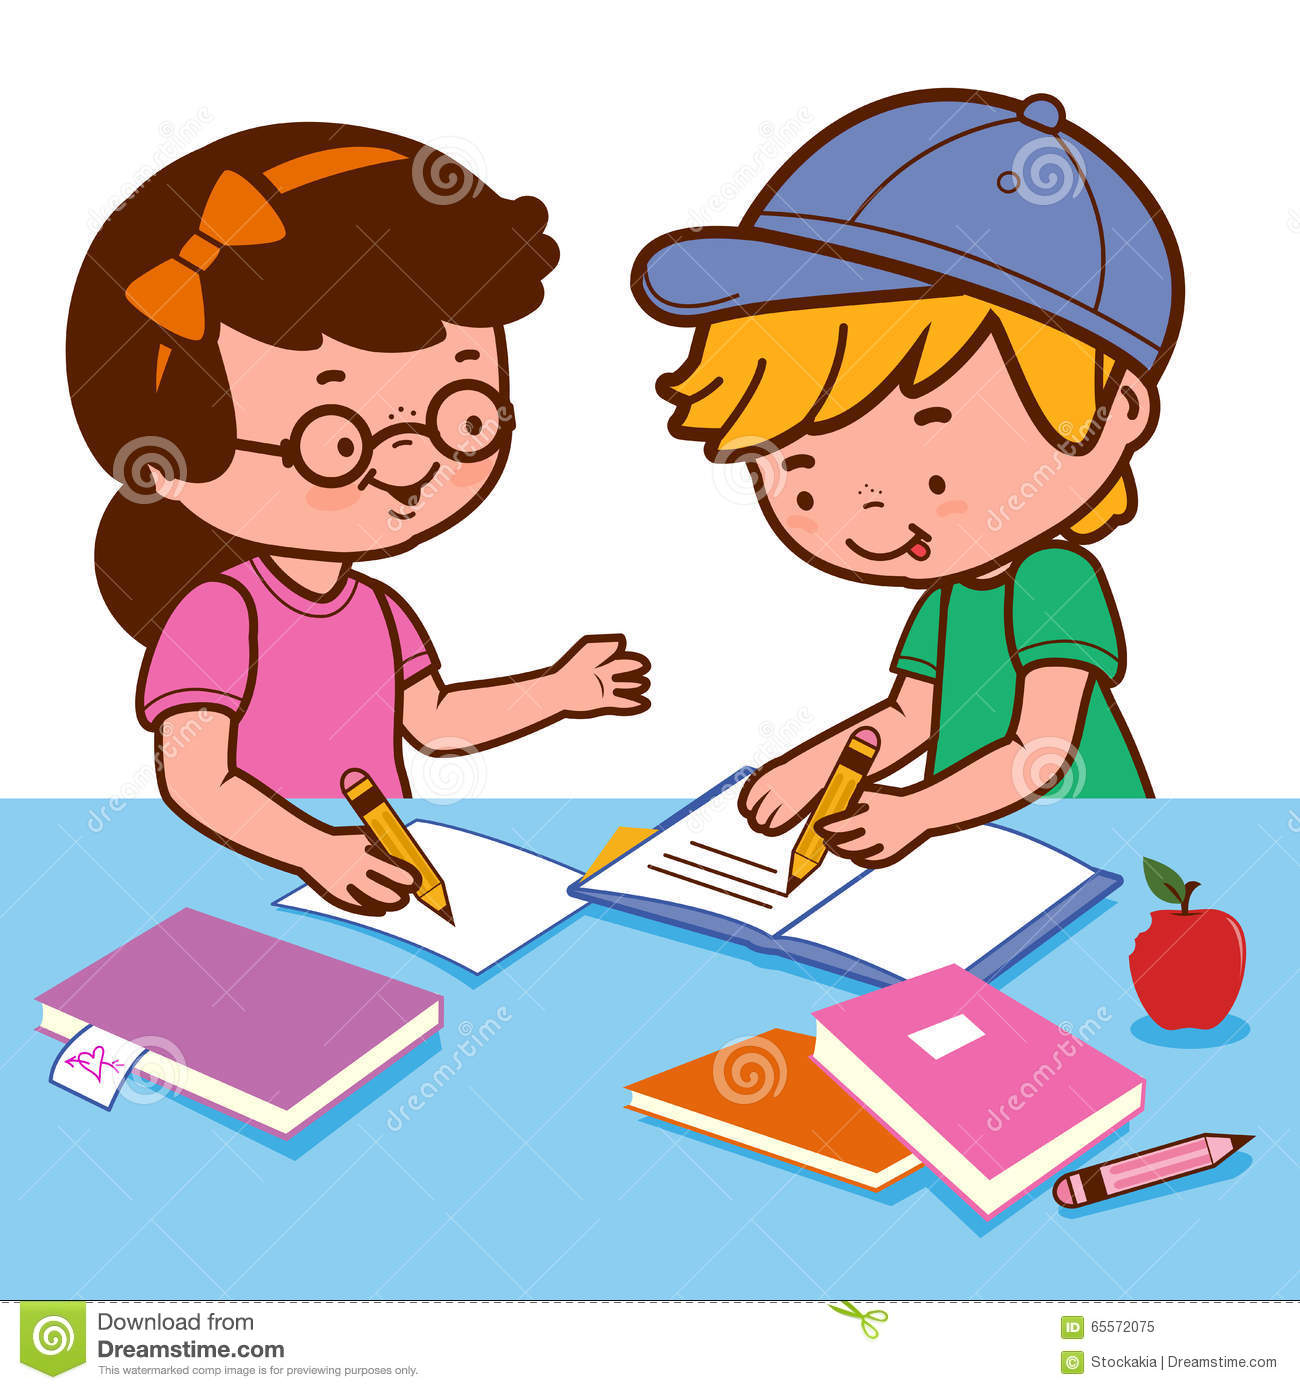 Girl Helping Boy With Homework  Royalty Free Stock Photography     Dreamstime com